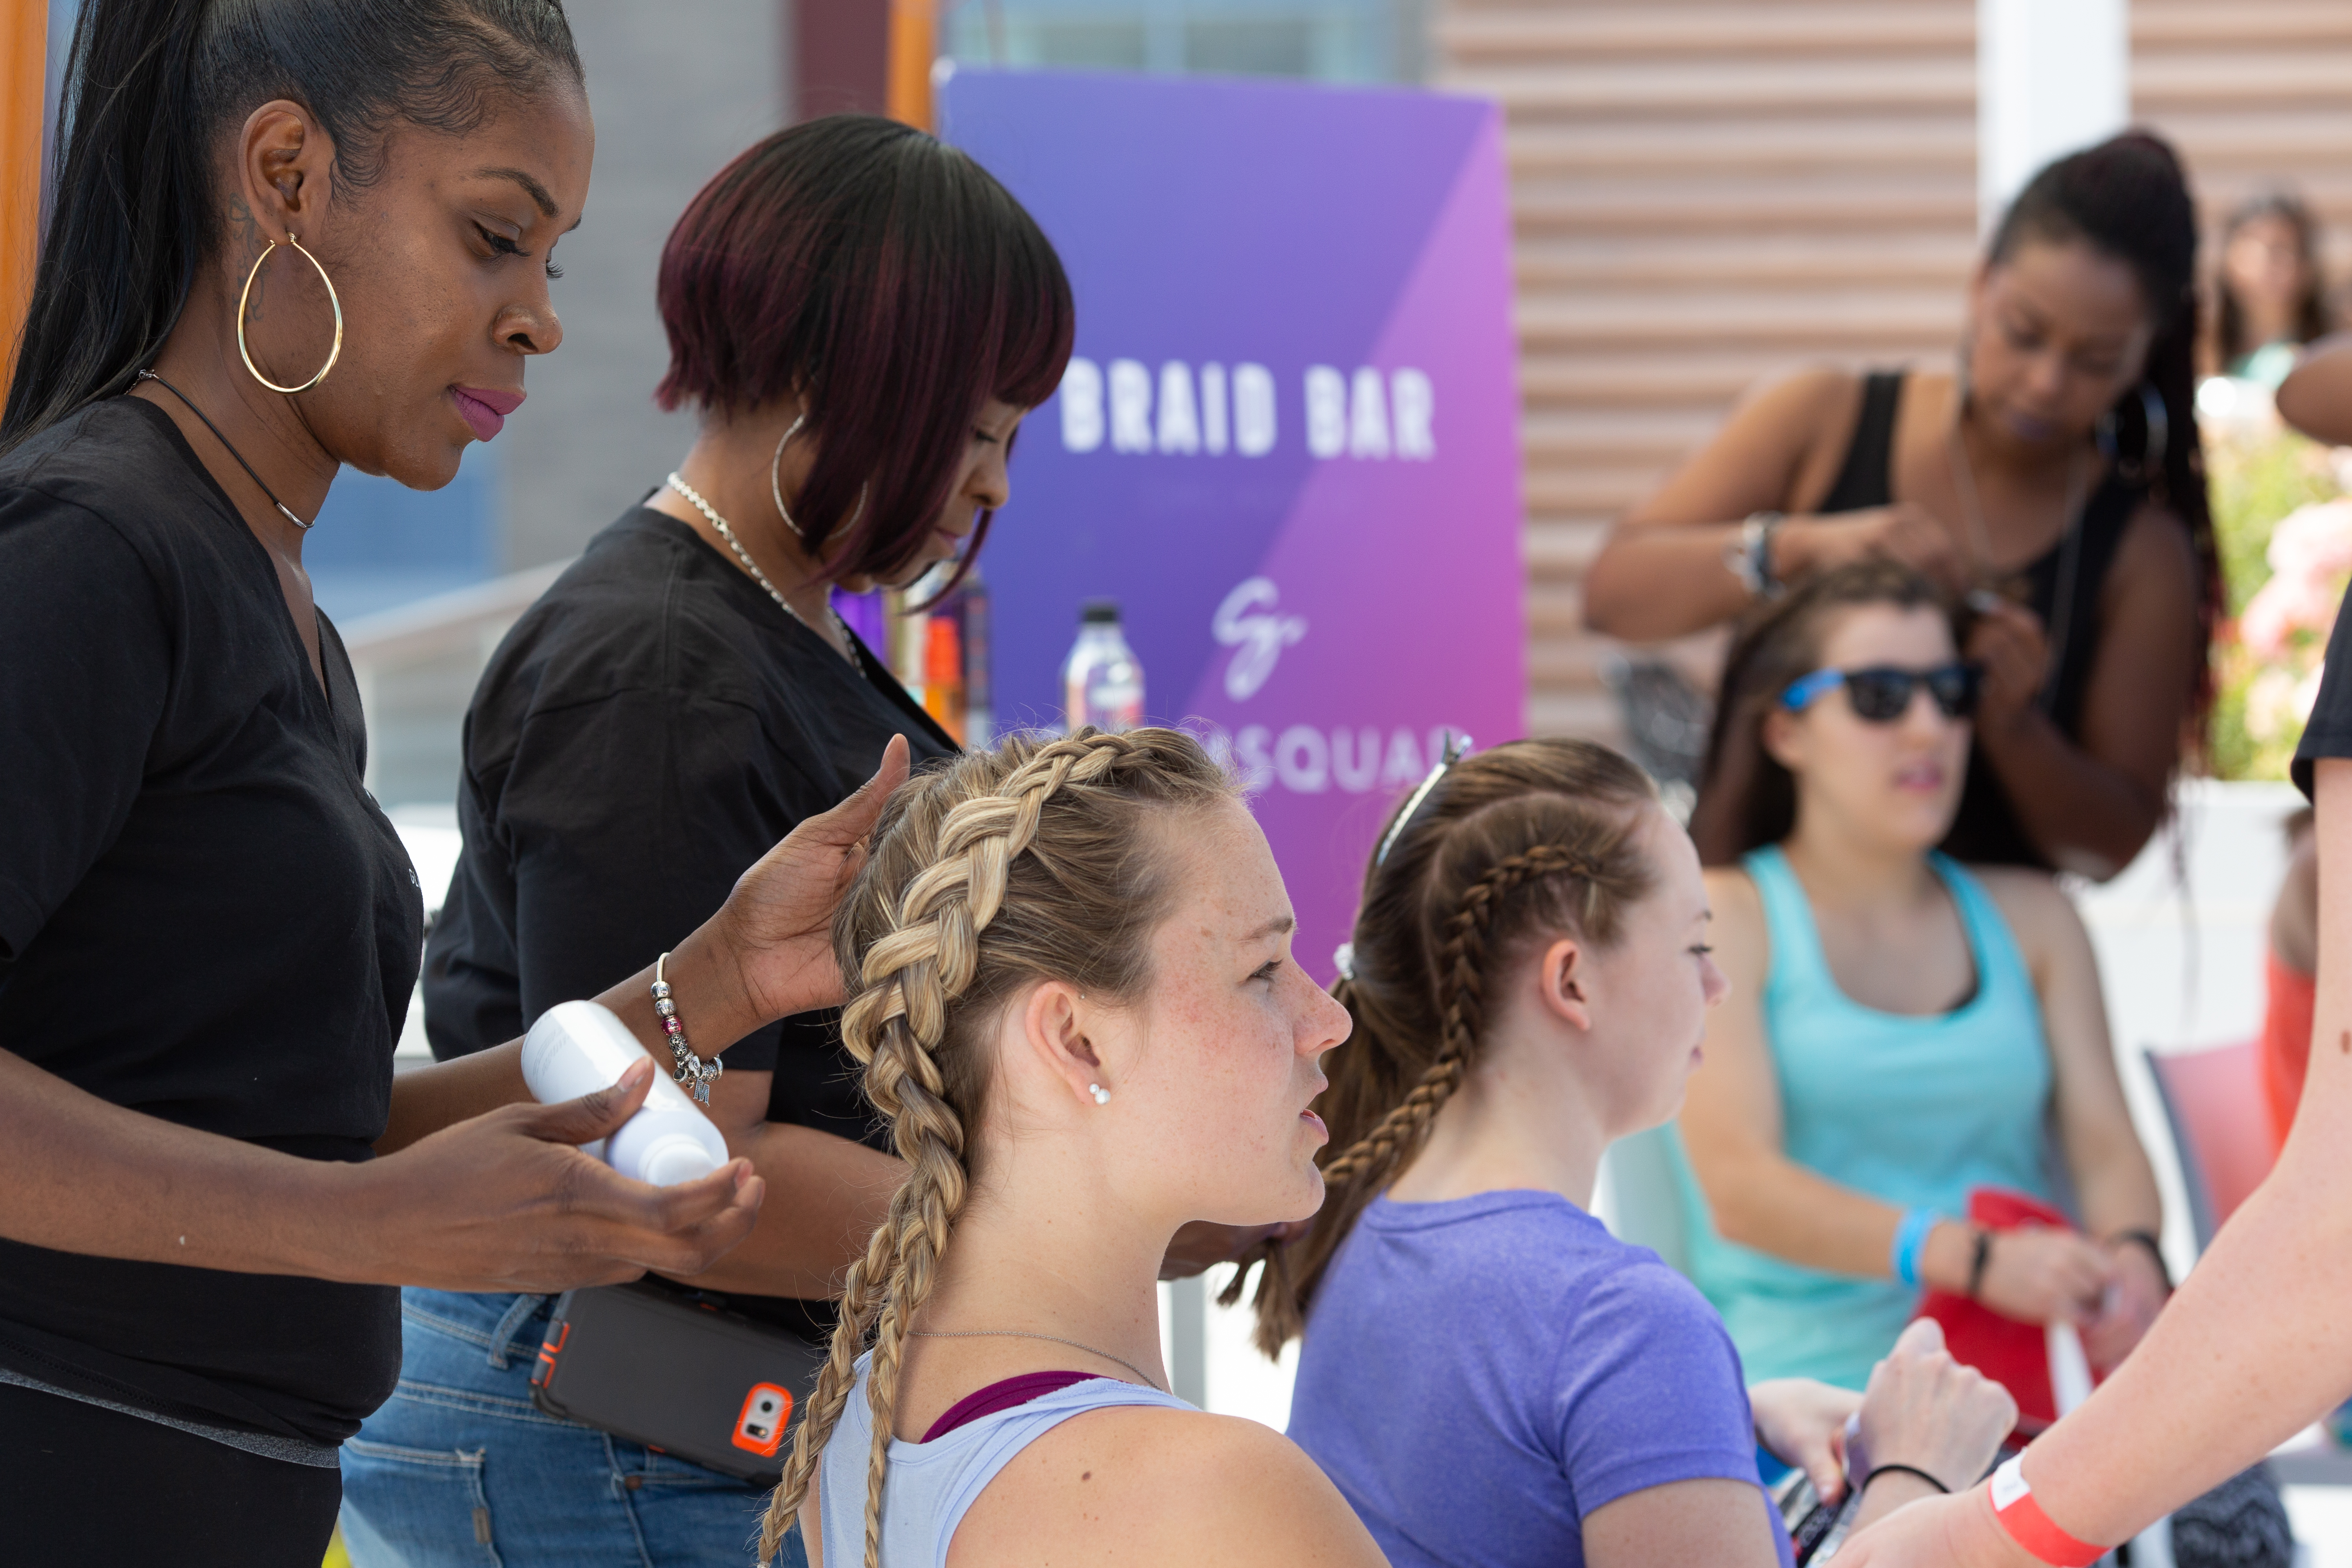 The day starts with a check-in party at 880 P rooftop, where attendees can get their hair braided, enjoy healthy treats and pick up their swag bag. (Image: Courtesy of Sweat Concierge)